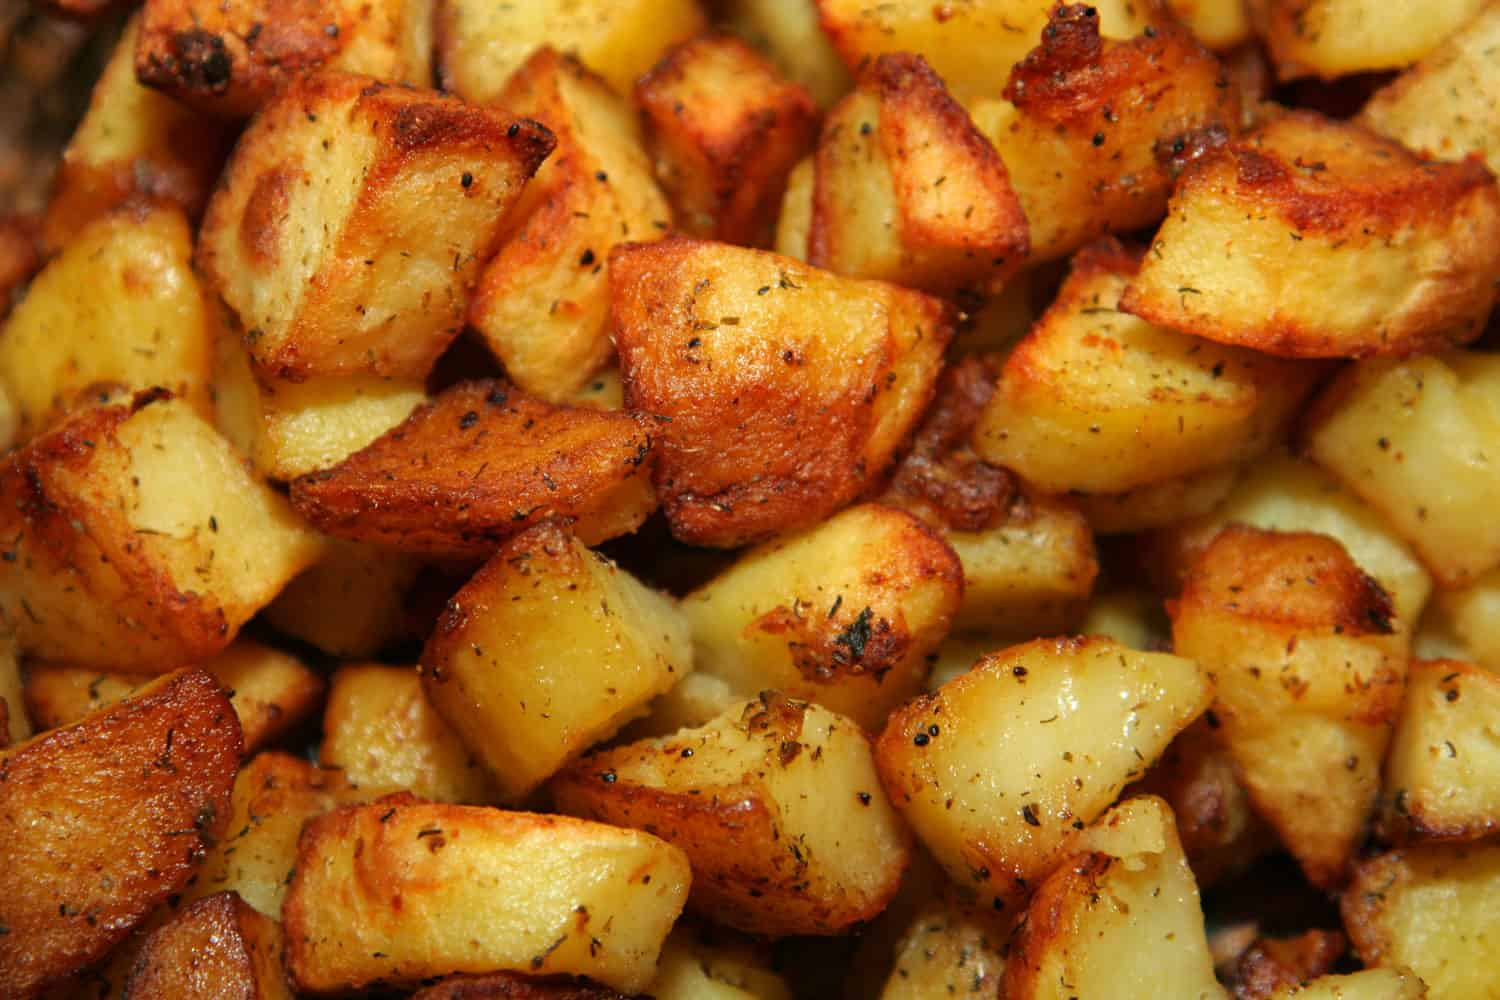 Delicious browned deep fried potatoes